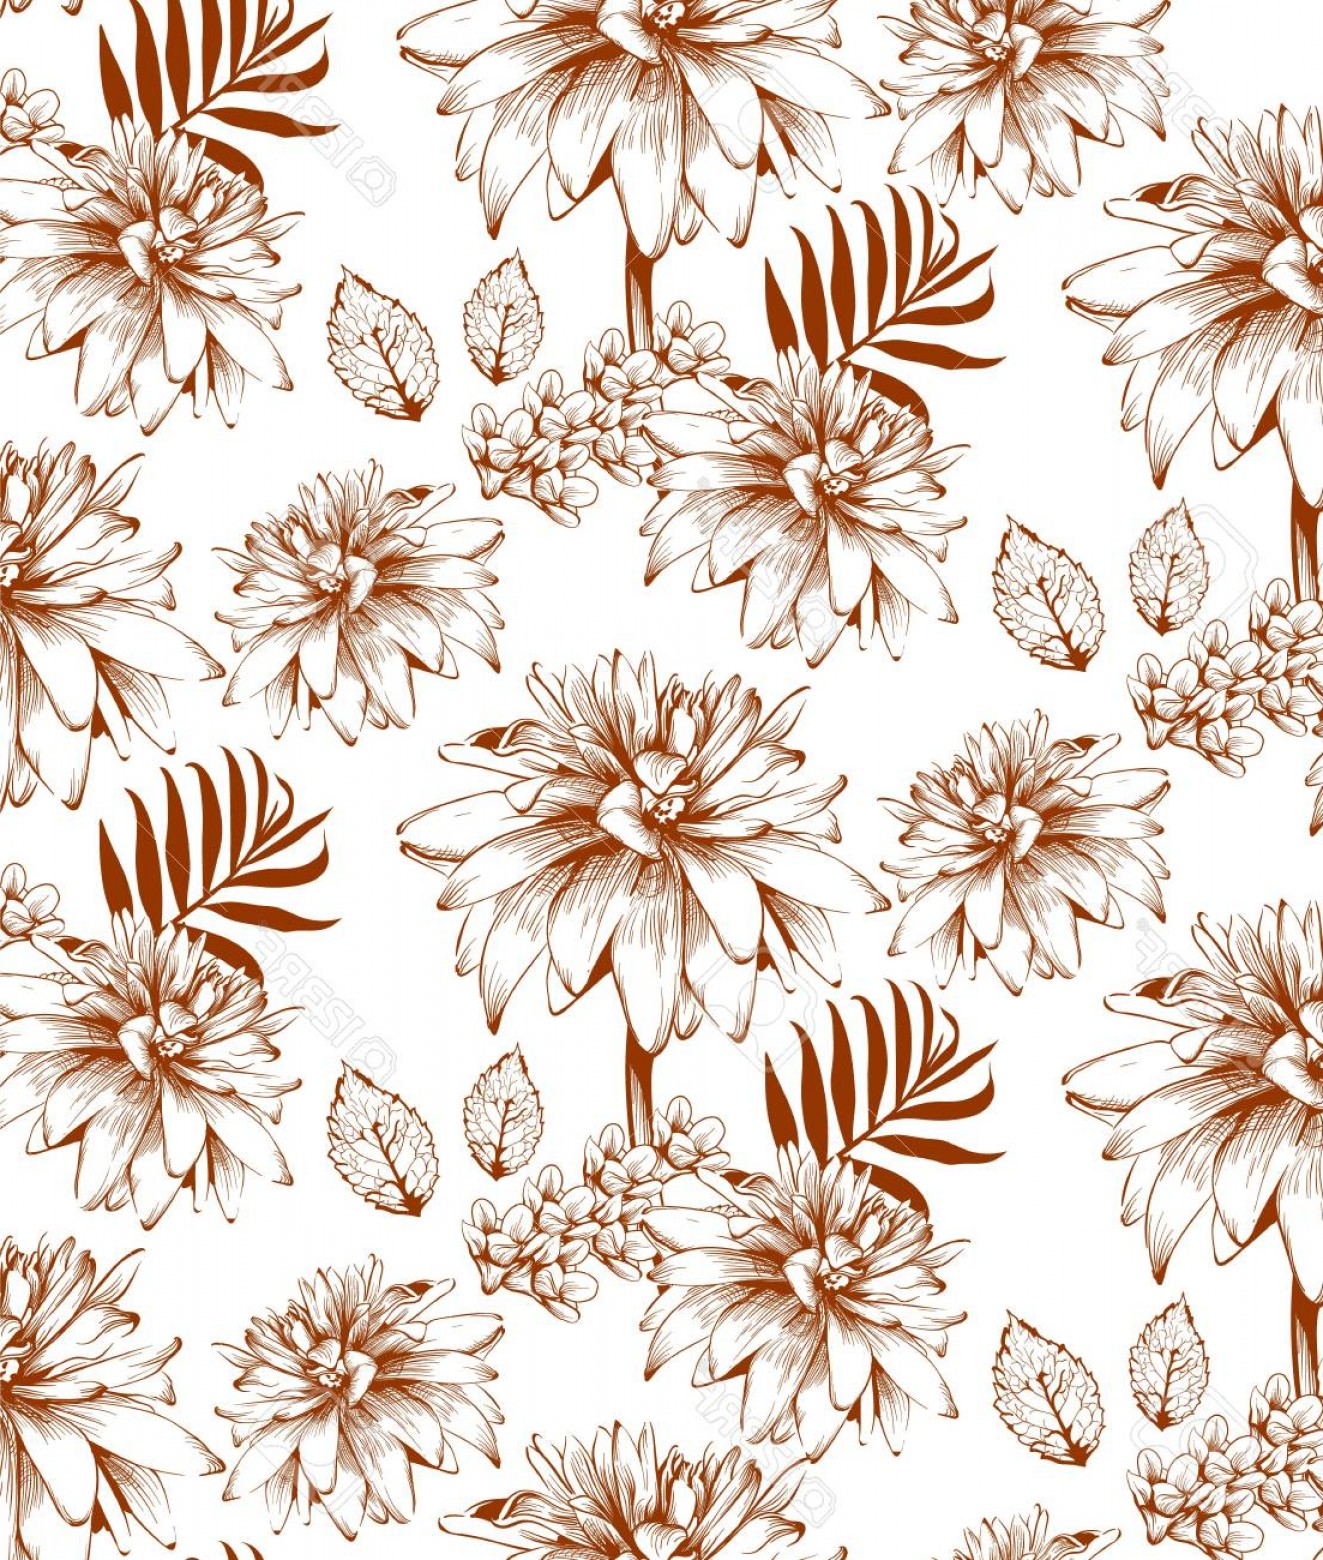 Beautiful Flowers Vector Graphic: Photostock Vector Beautiful Flowers Vector Illustration Floral Pattern Background Line Art Hand Drawn Graphic Style Il